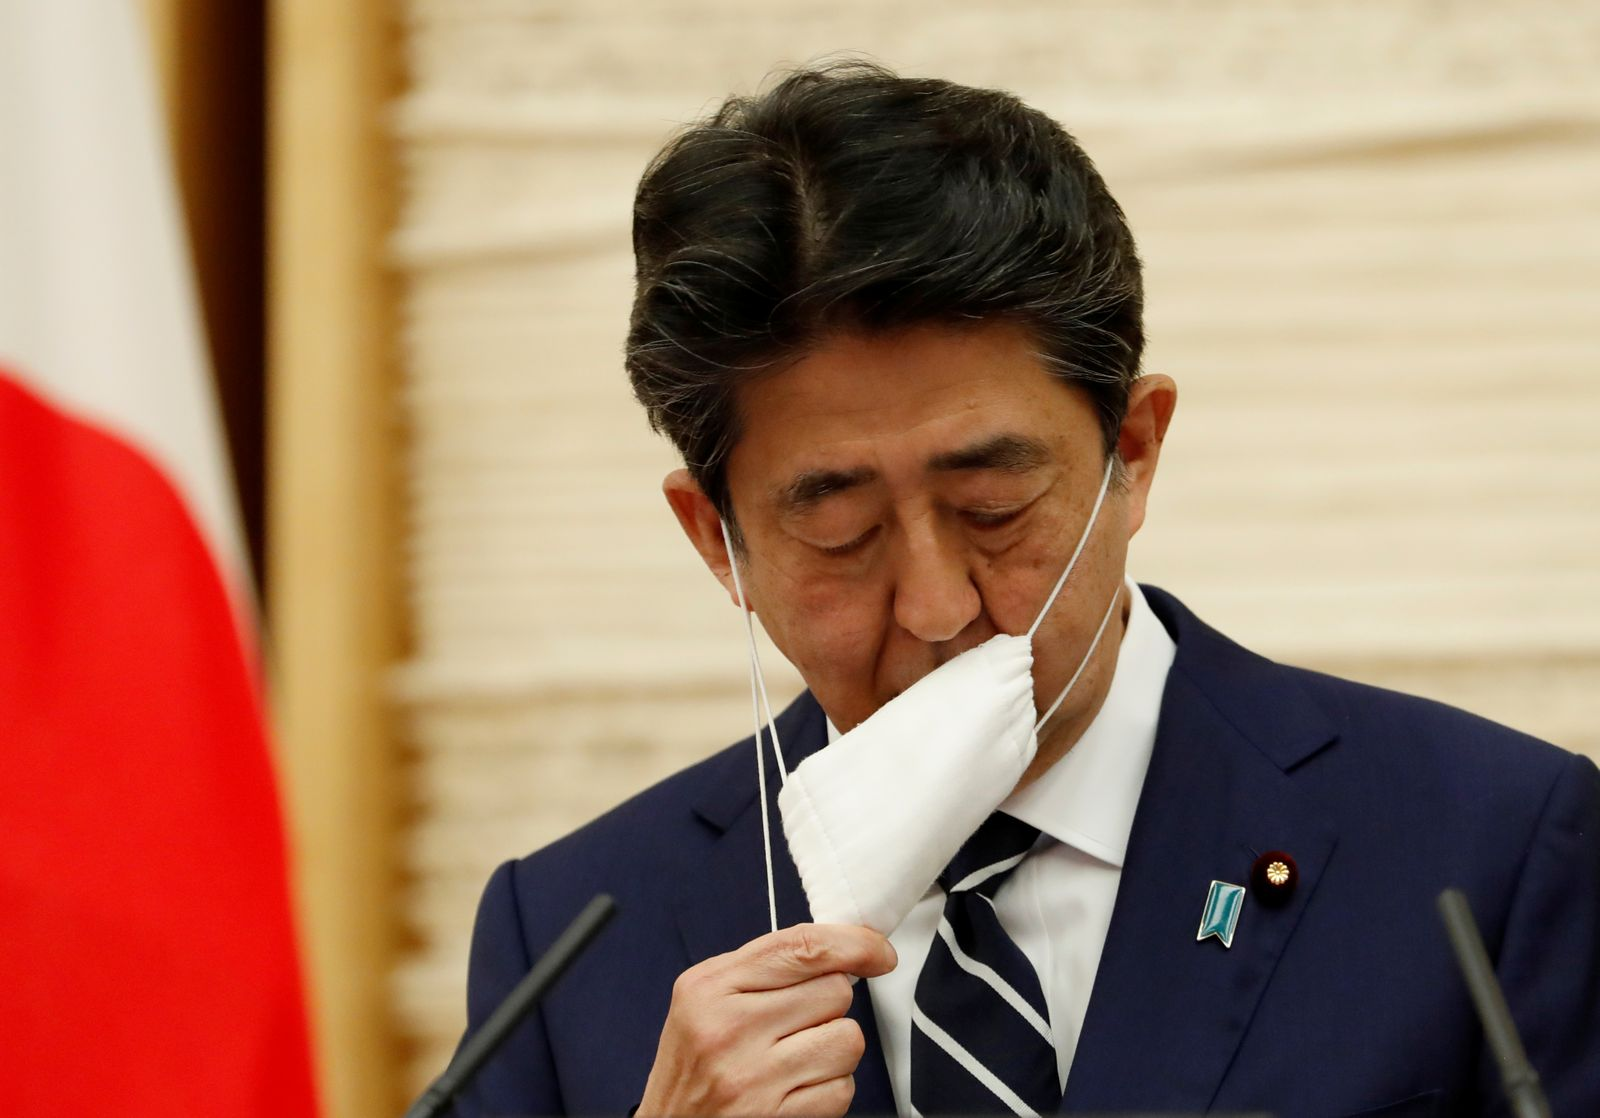 Japan's Prime Minister Shinzo Abe takes off his protective mask as he begins his news conference in Tokyo